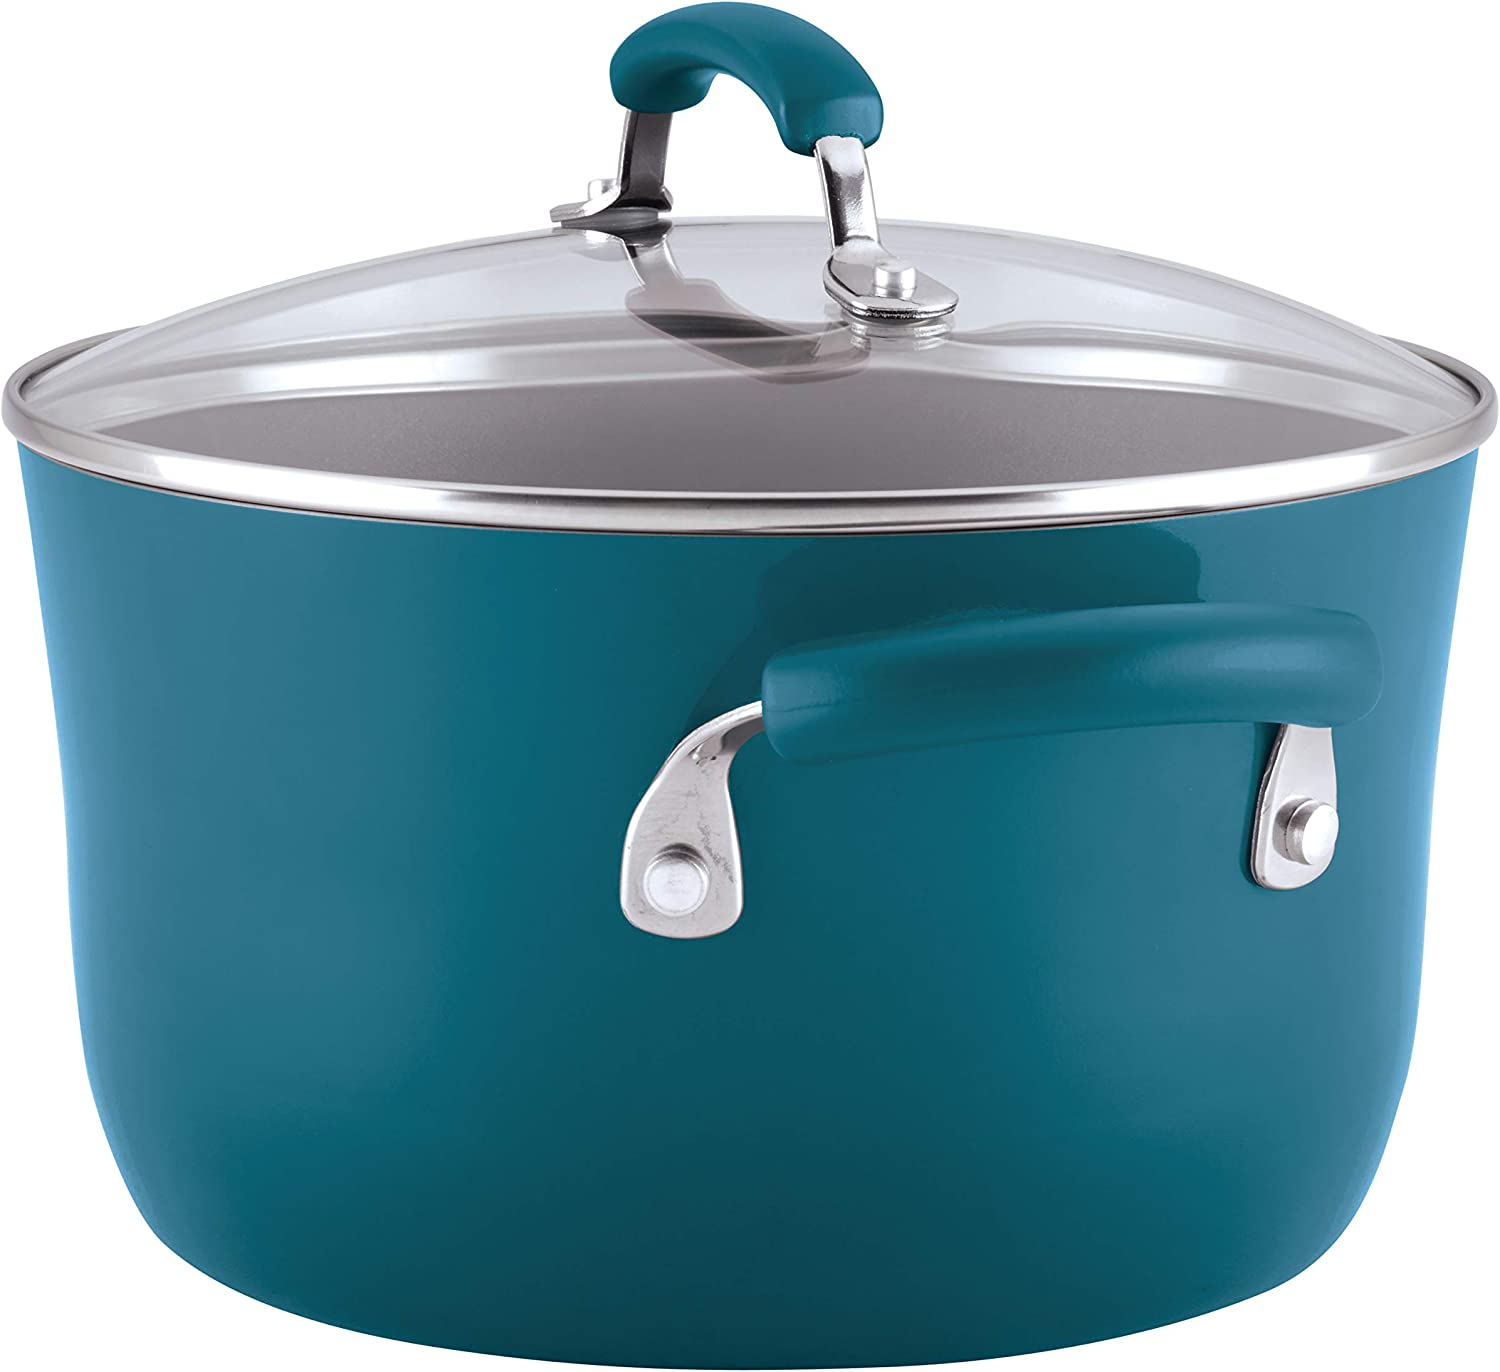 Rachael Ray Brights Nonstick Stockpot